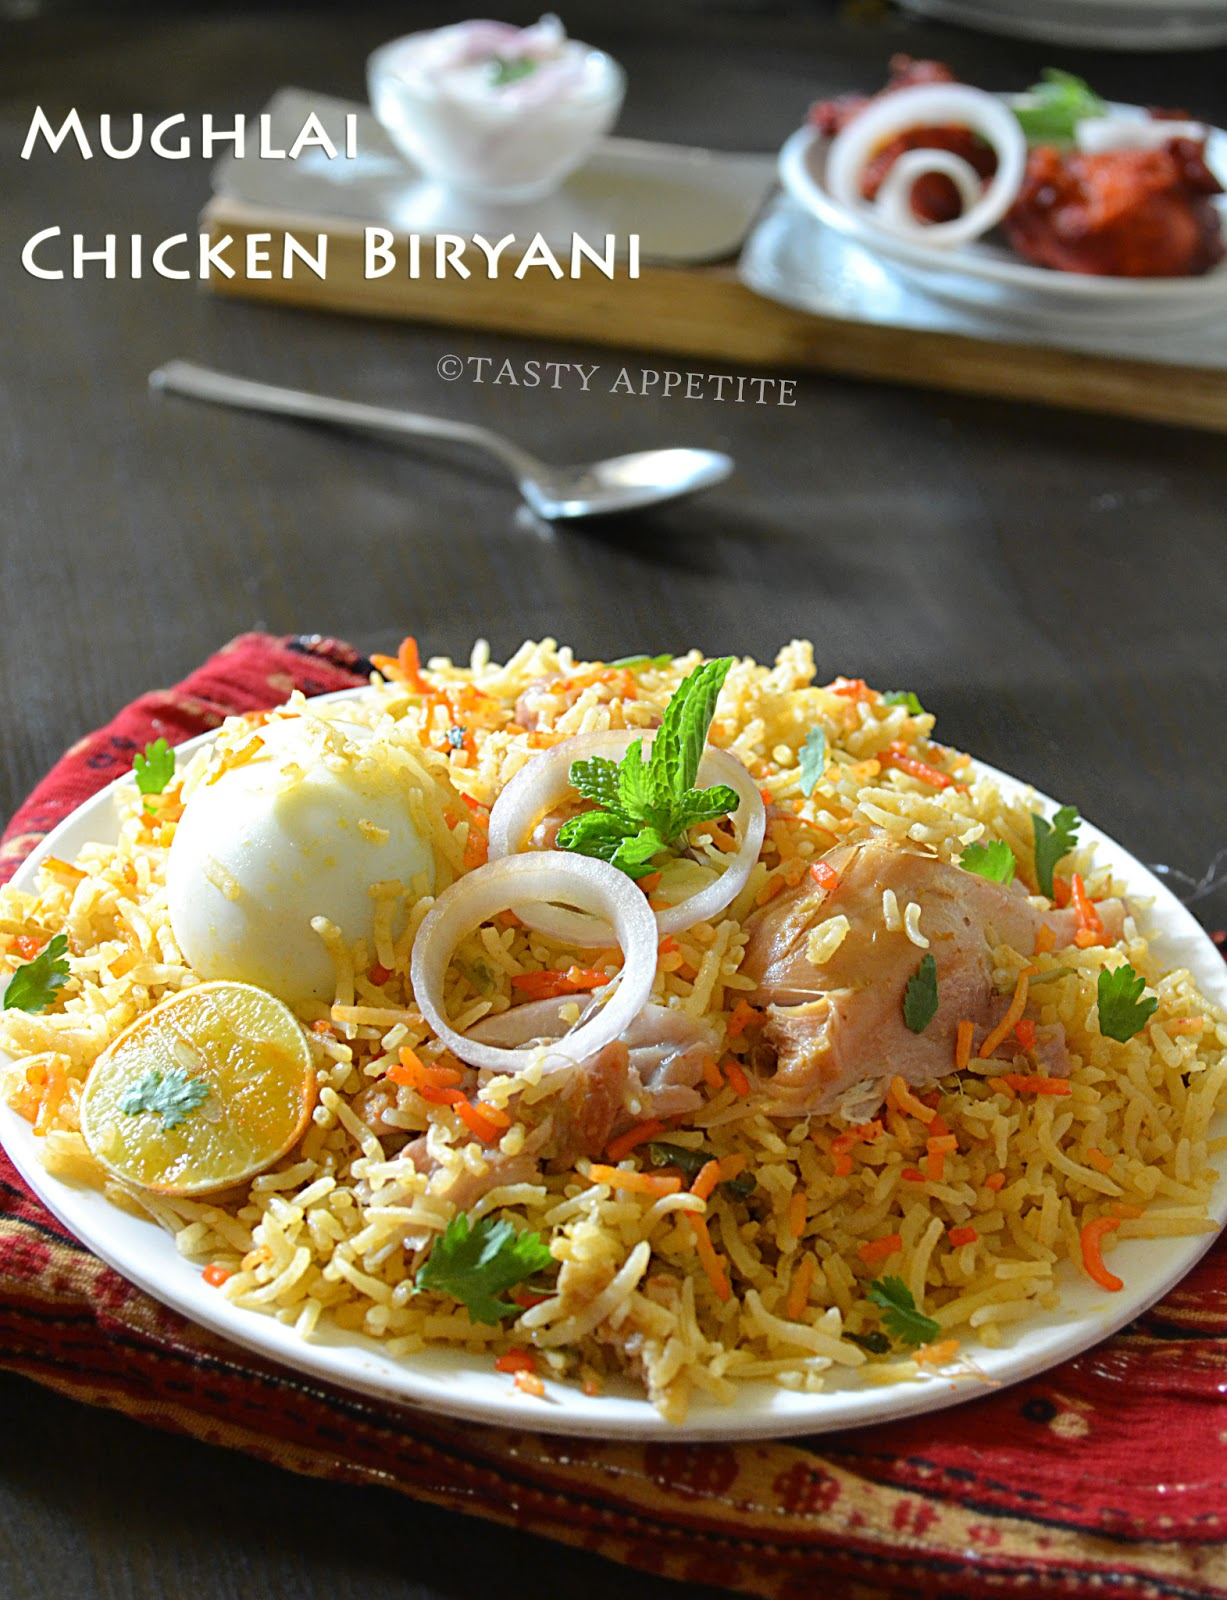 How to make mughlai biryani mughlai chicken biryani spicy how to make mughlai biryani mughlai chicken biryani spicy biryani recipes forumfinder Image collections